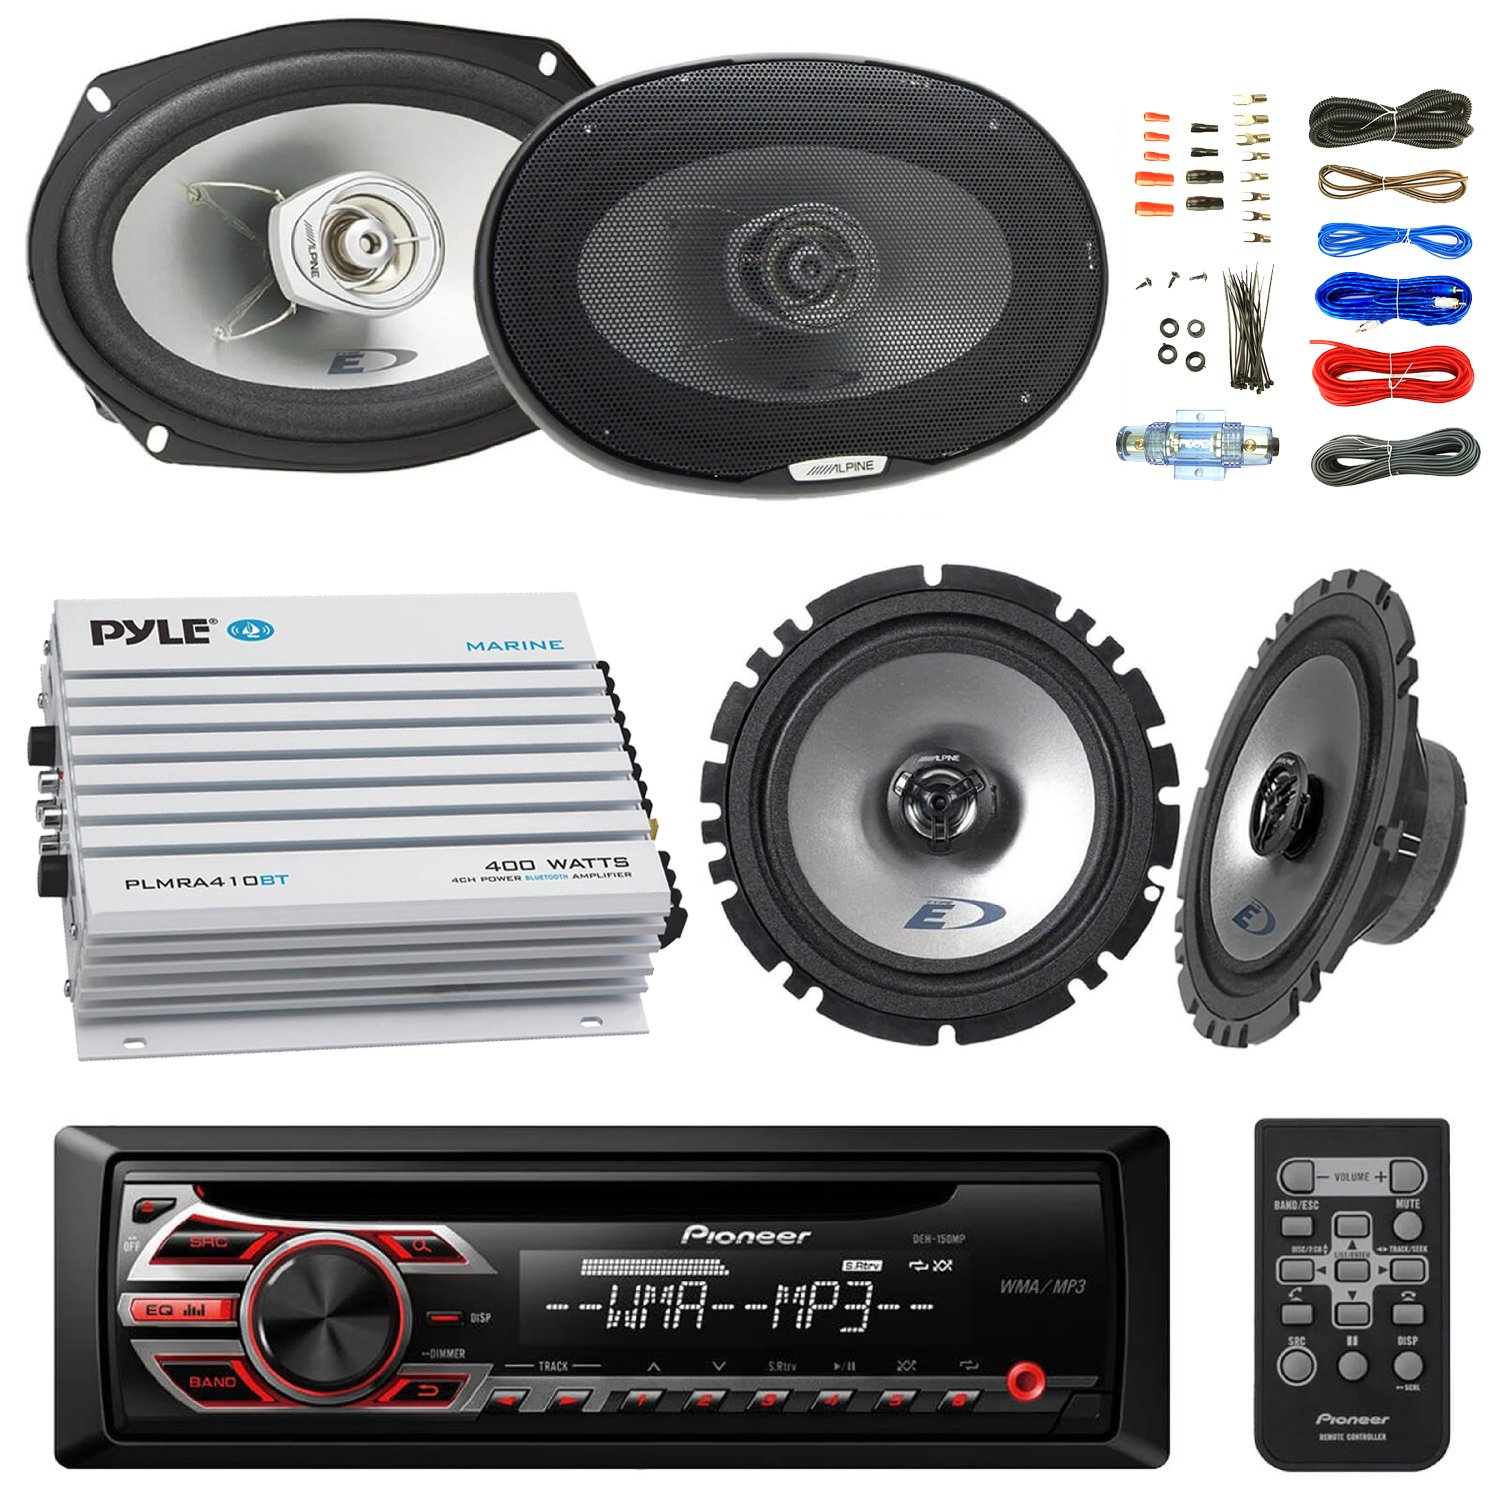 Pioneer Deh150mp Din Car Stereo Kit Bundle With 2 Alpine Fh X700bt Wiring Diagram On Pyle Audio 6x9 Inch Way Speakers 65 Coaxial Enrock 4 Channel